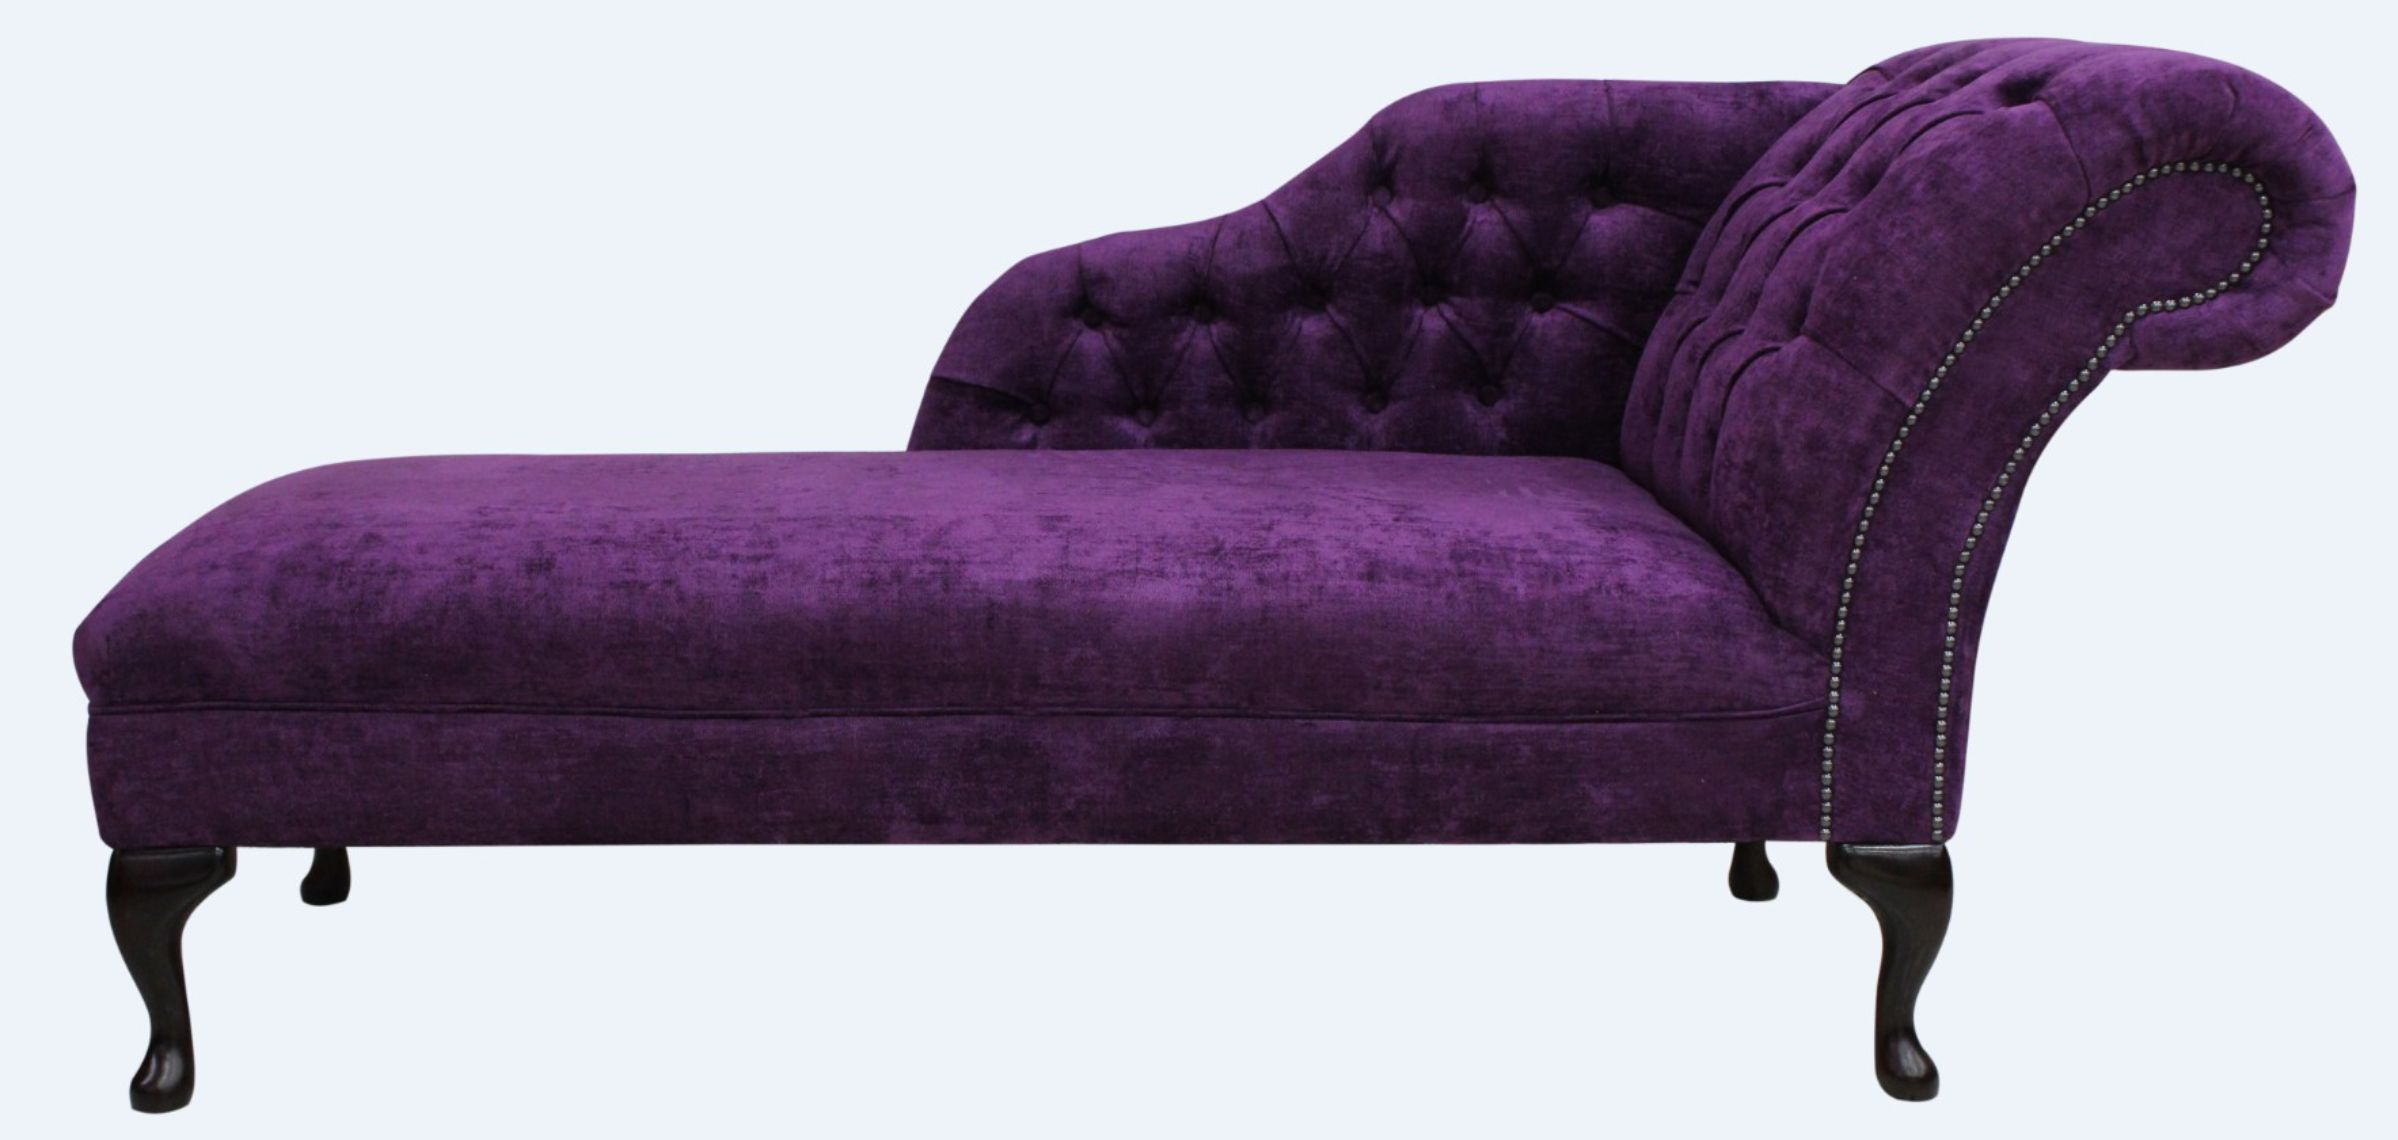 Chesterfield Chaise Lounge Day Bed Velluto Amethyst Purple